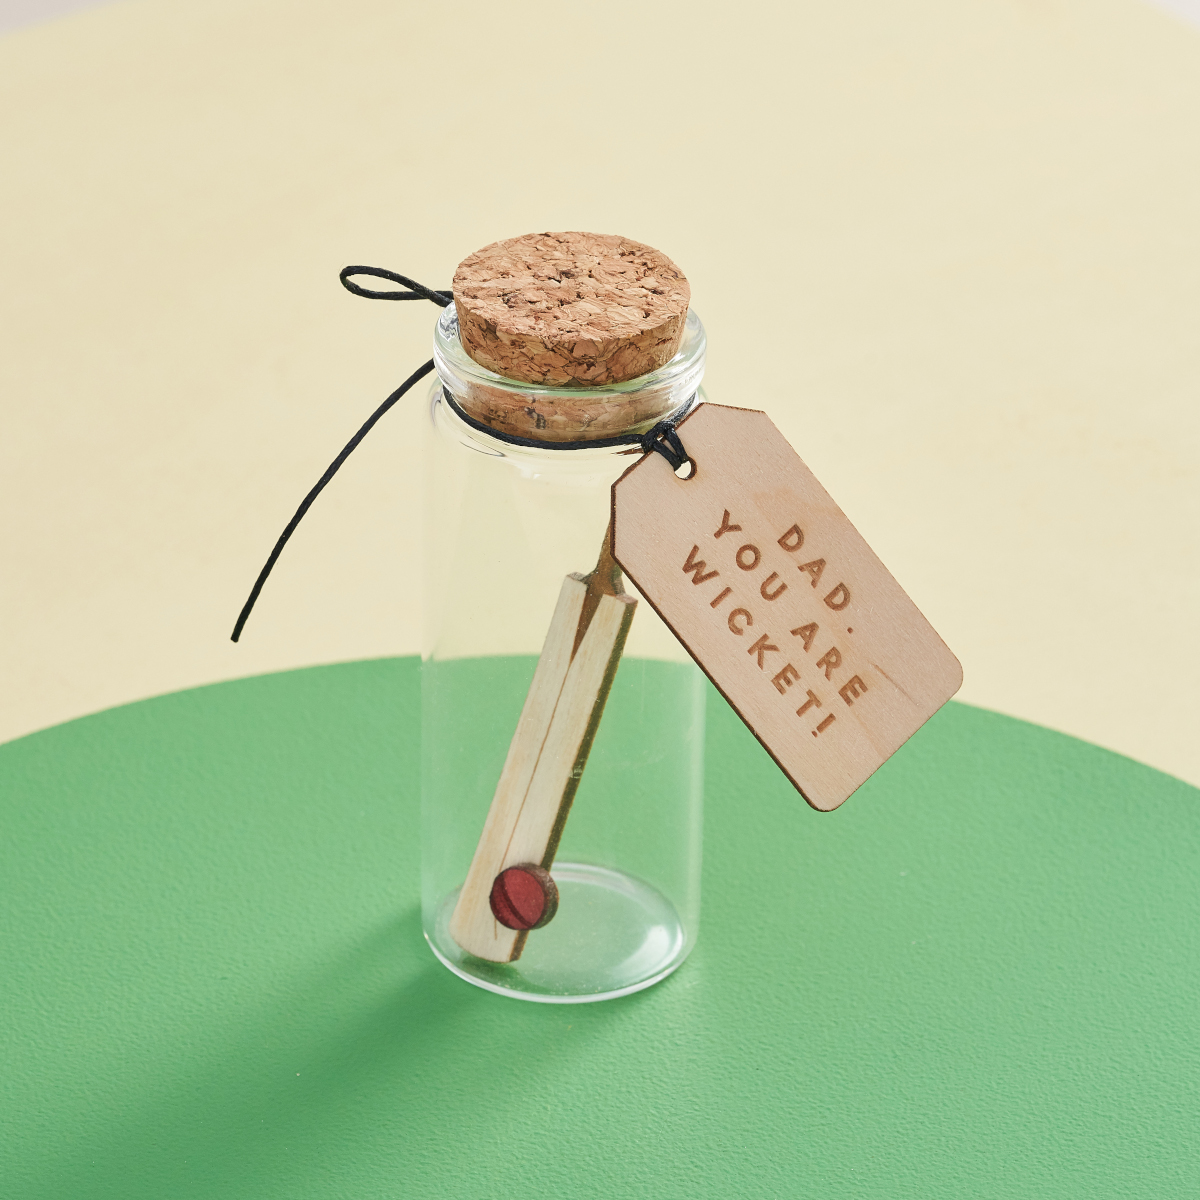 Cricket in a bottle keepsake, perfect gift for cricketers